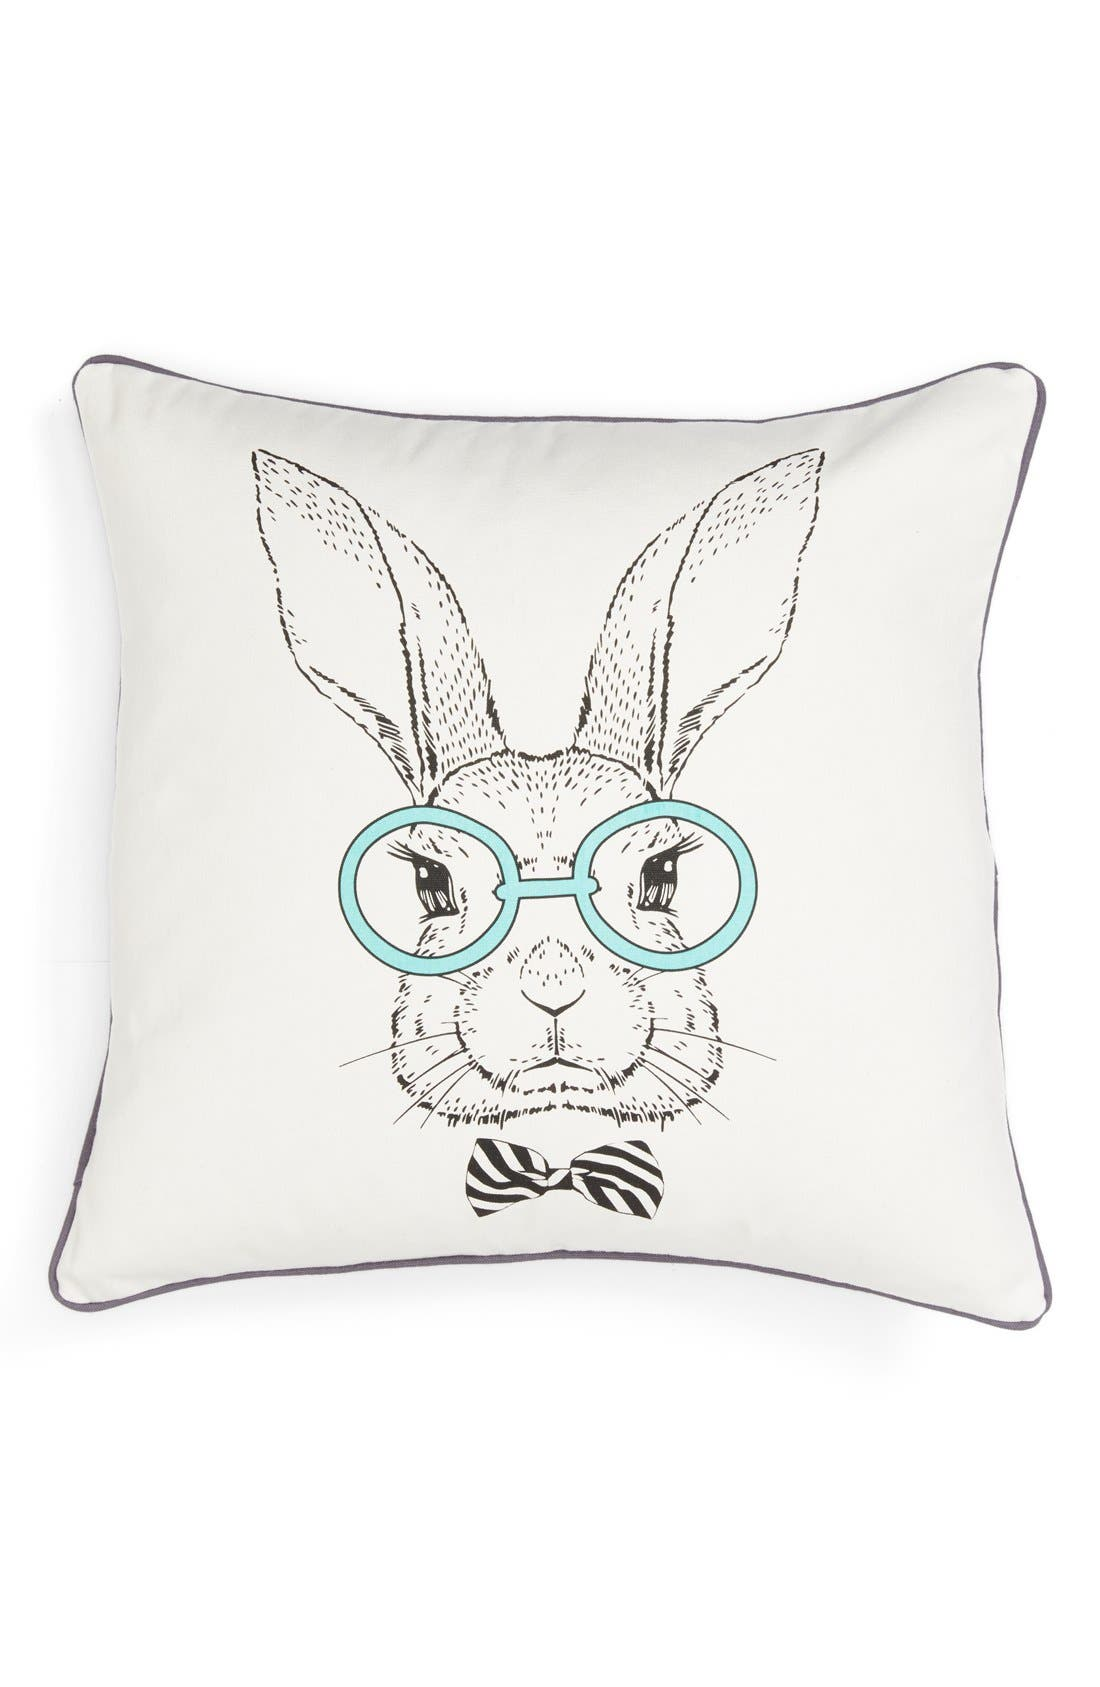 Main Image - Levtex 'Rabbit with Specs' Pillow